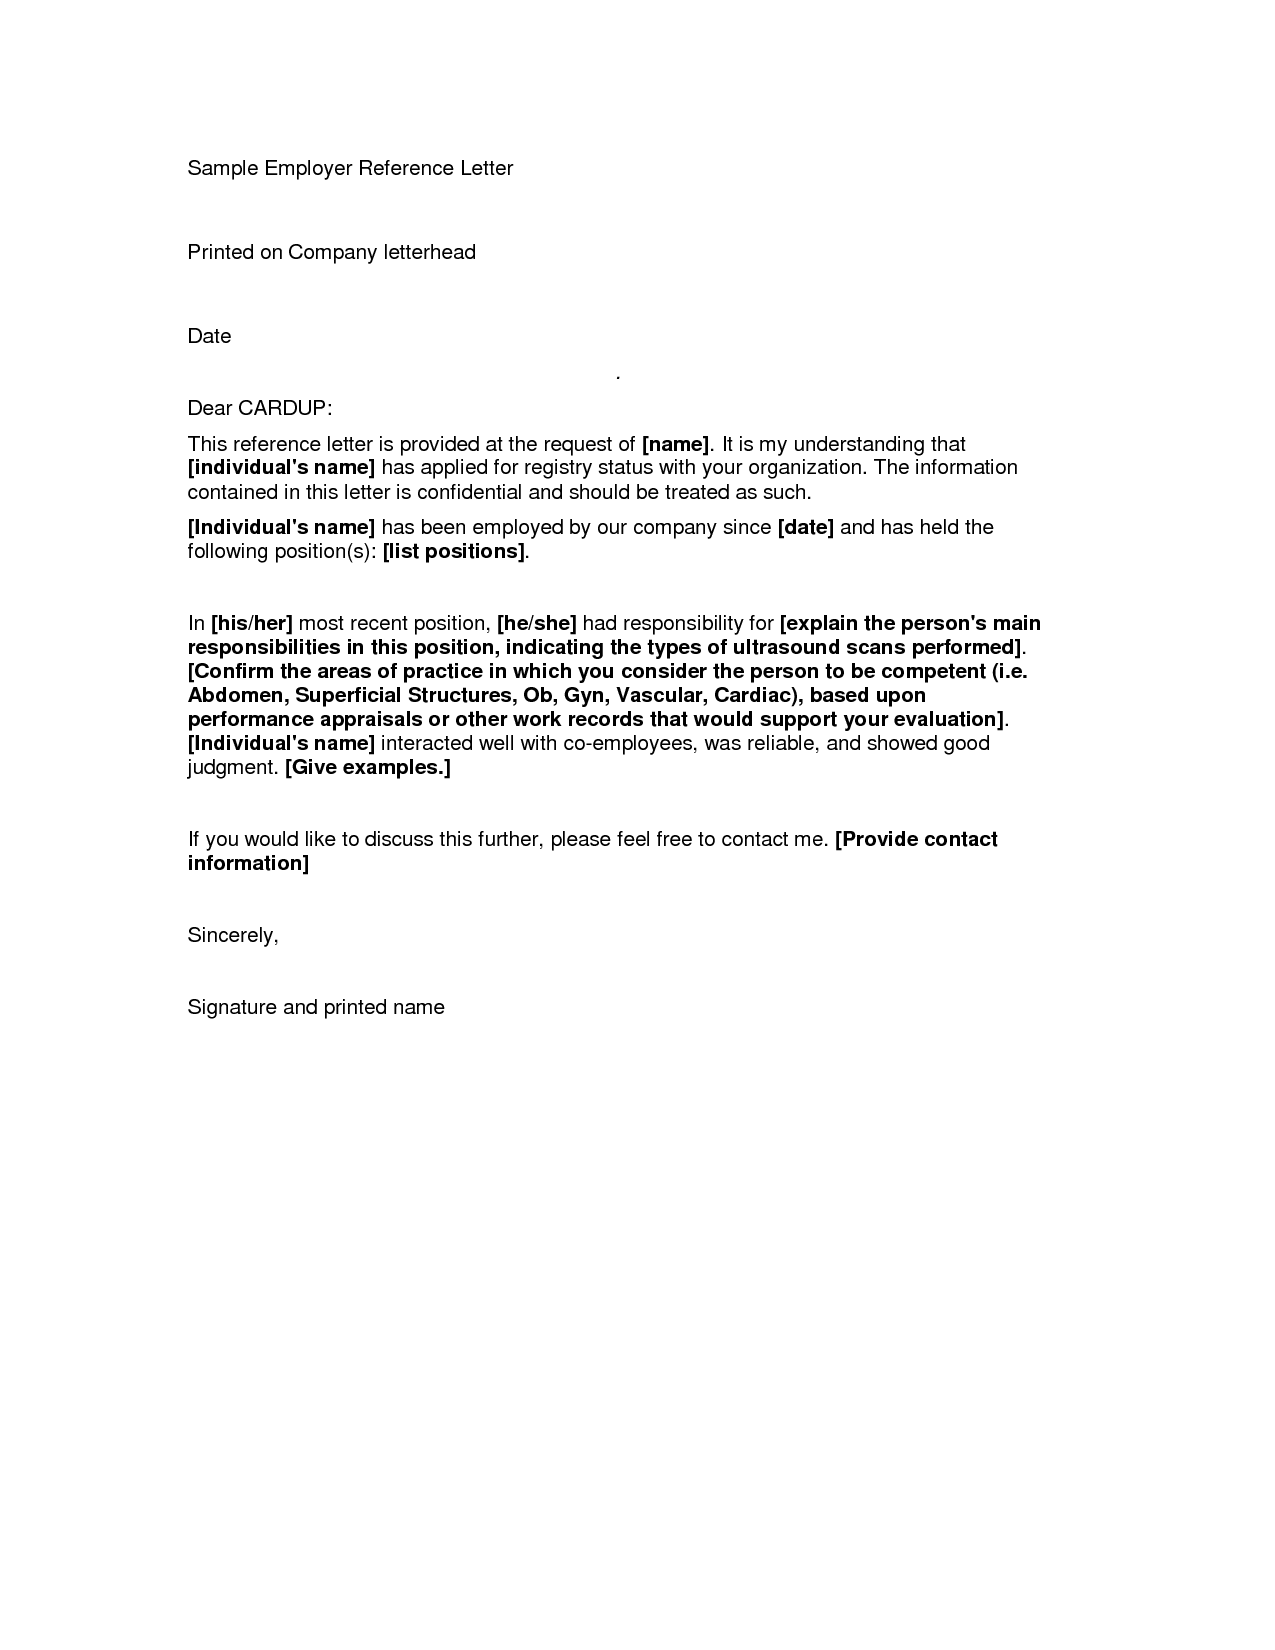 Sample Reference Letter From Employer  Letter Examples